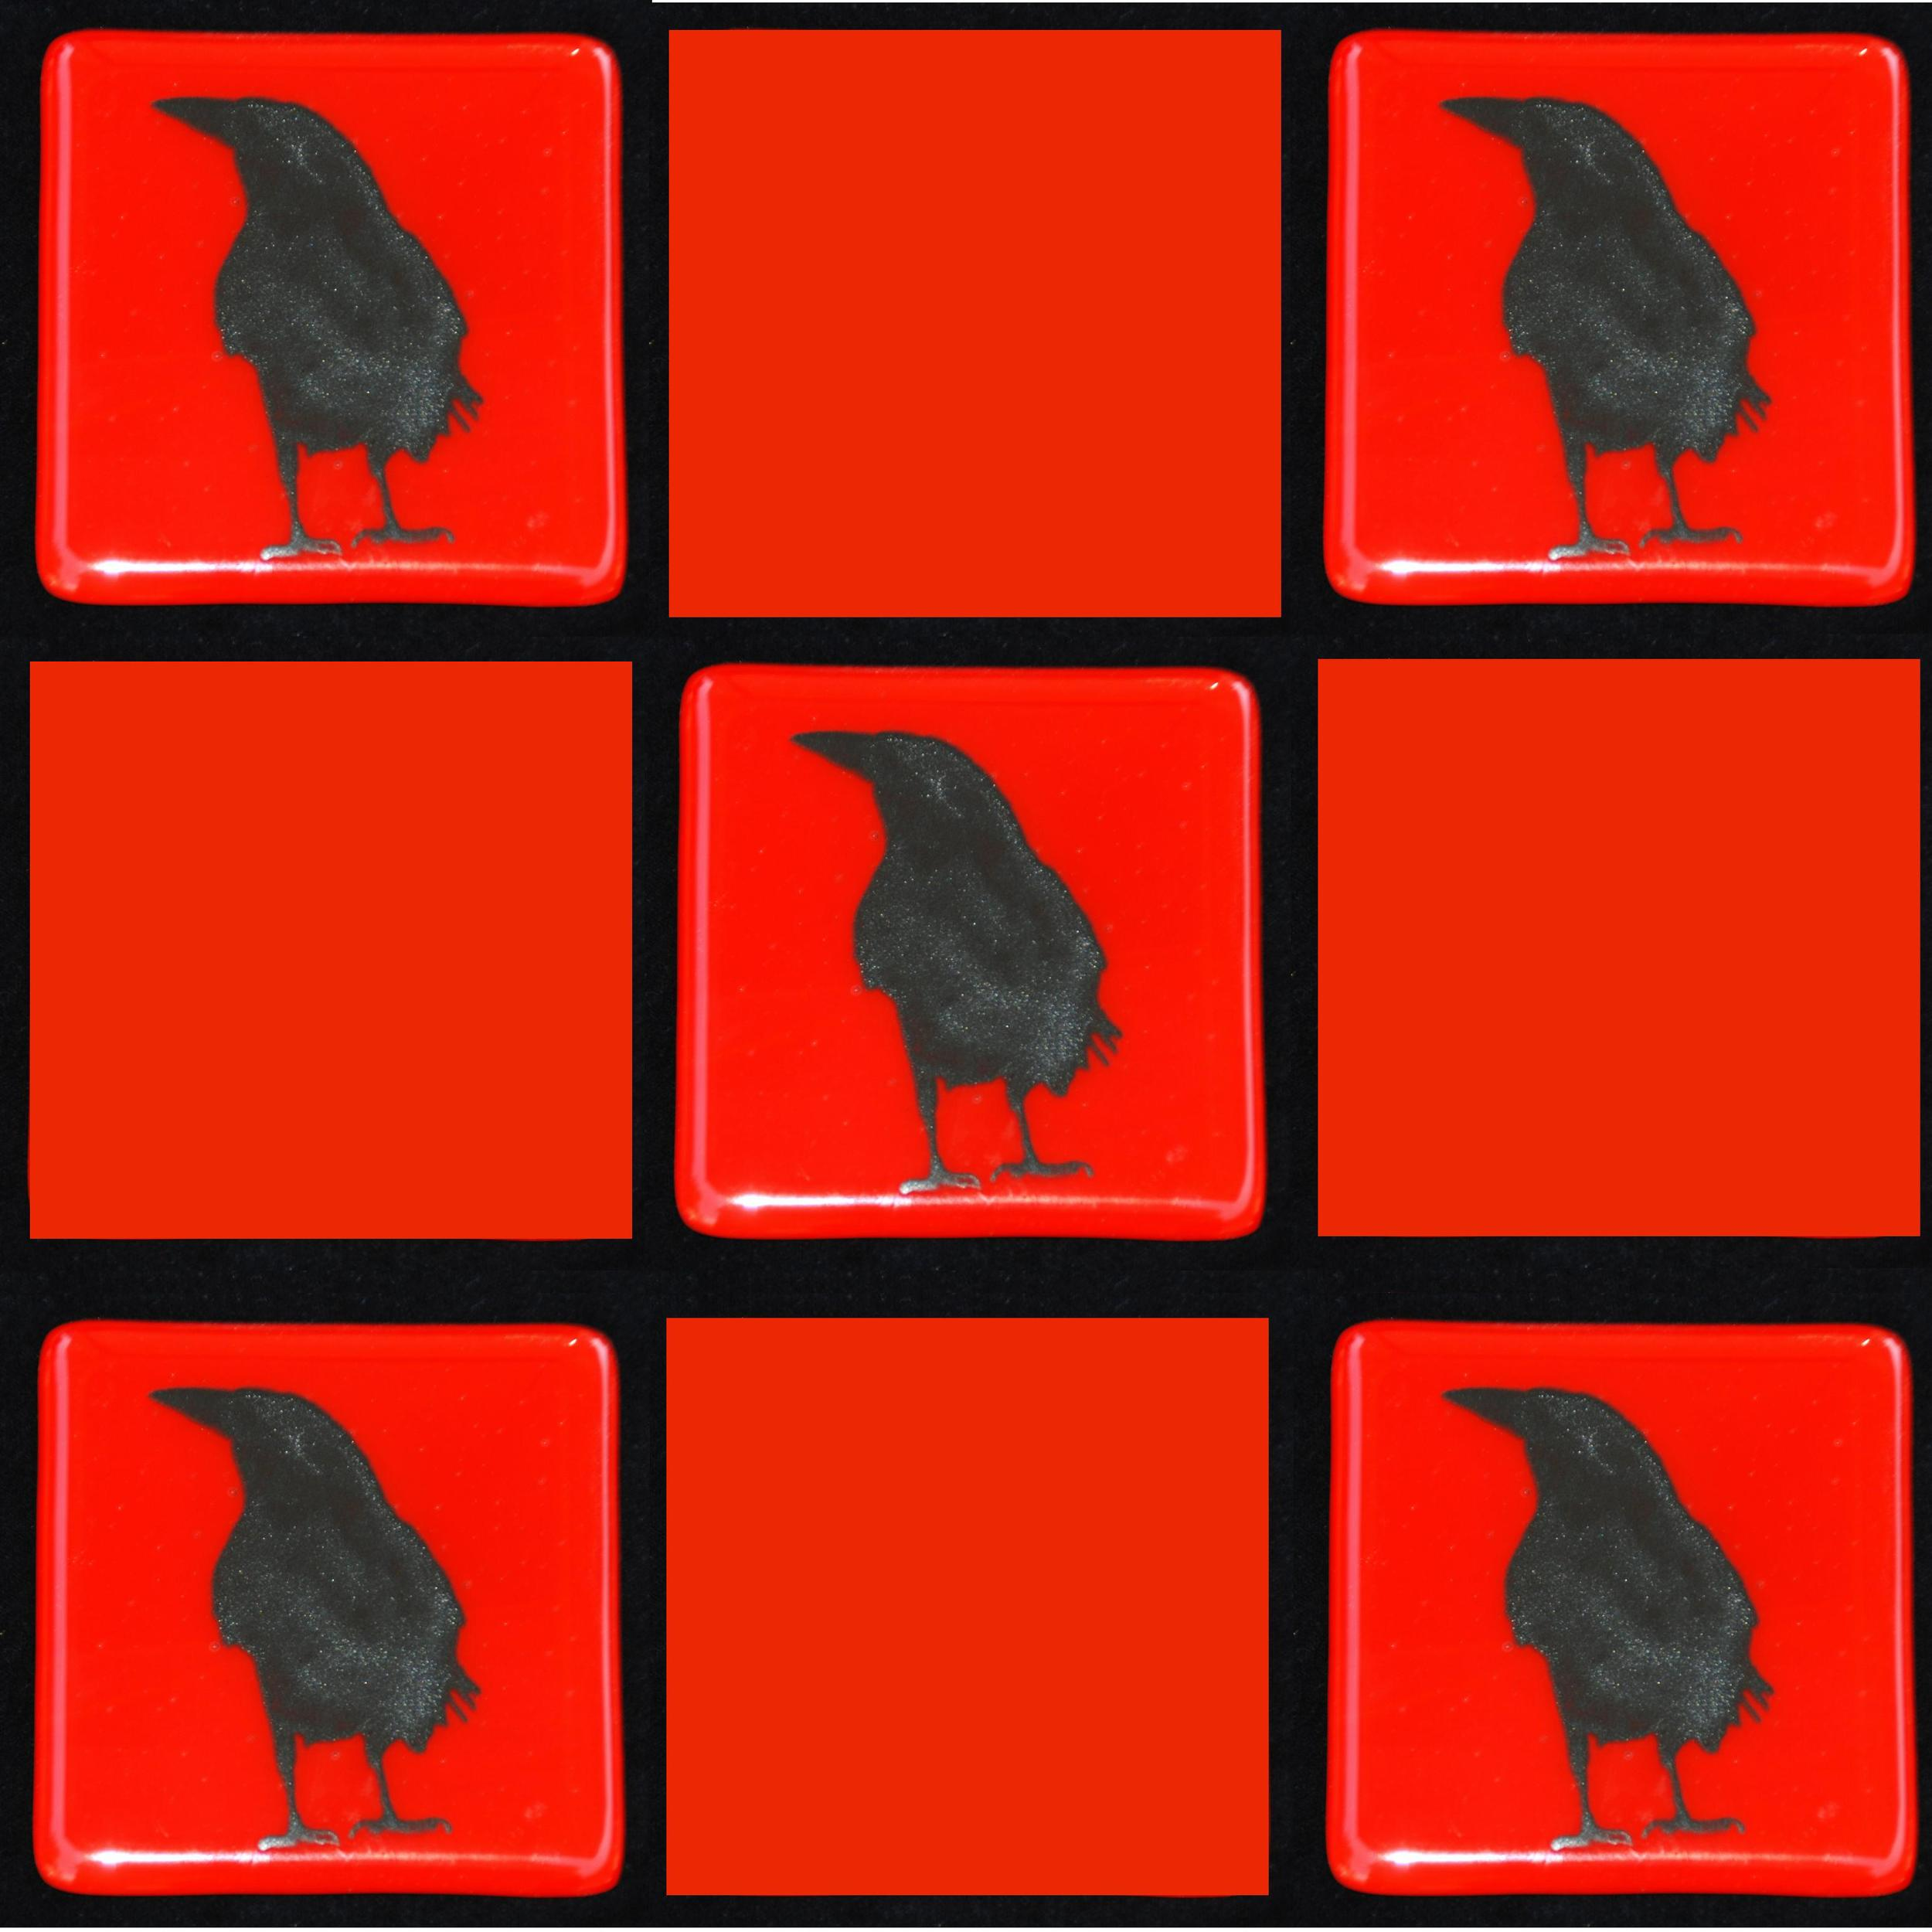 red raven tiles with red.jpg